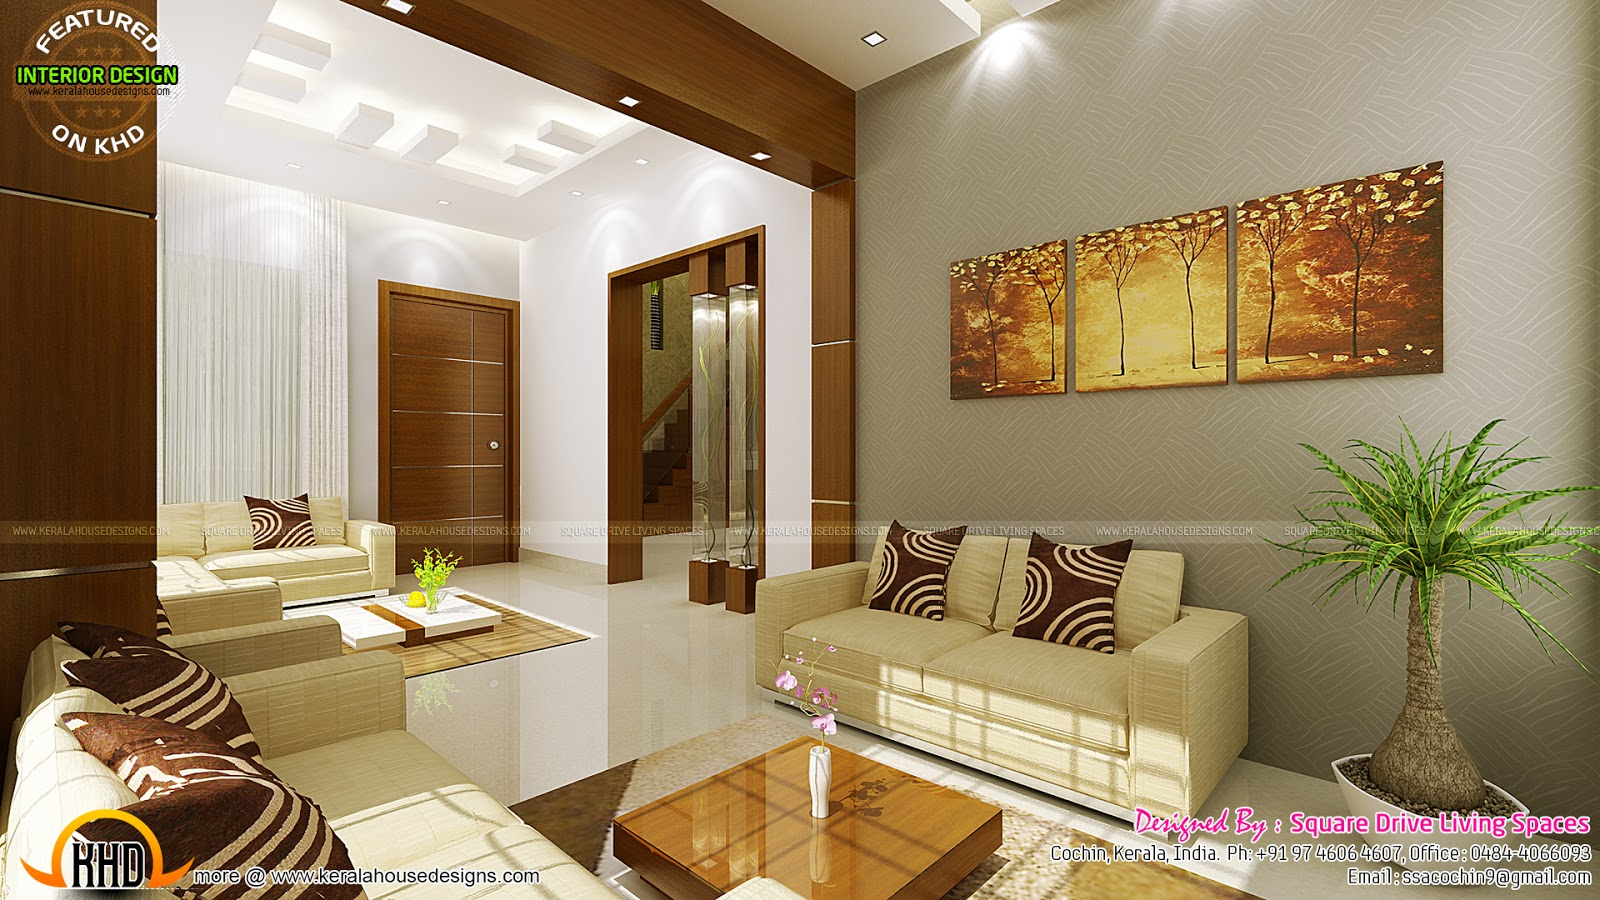 Contemporary kitchen dining and living room kerala home design and floor plans - Room design photos ...